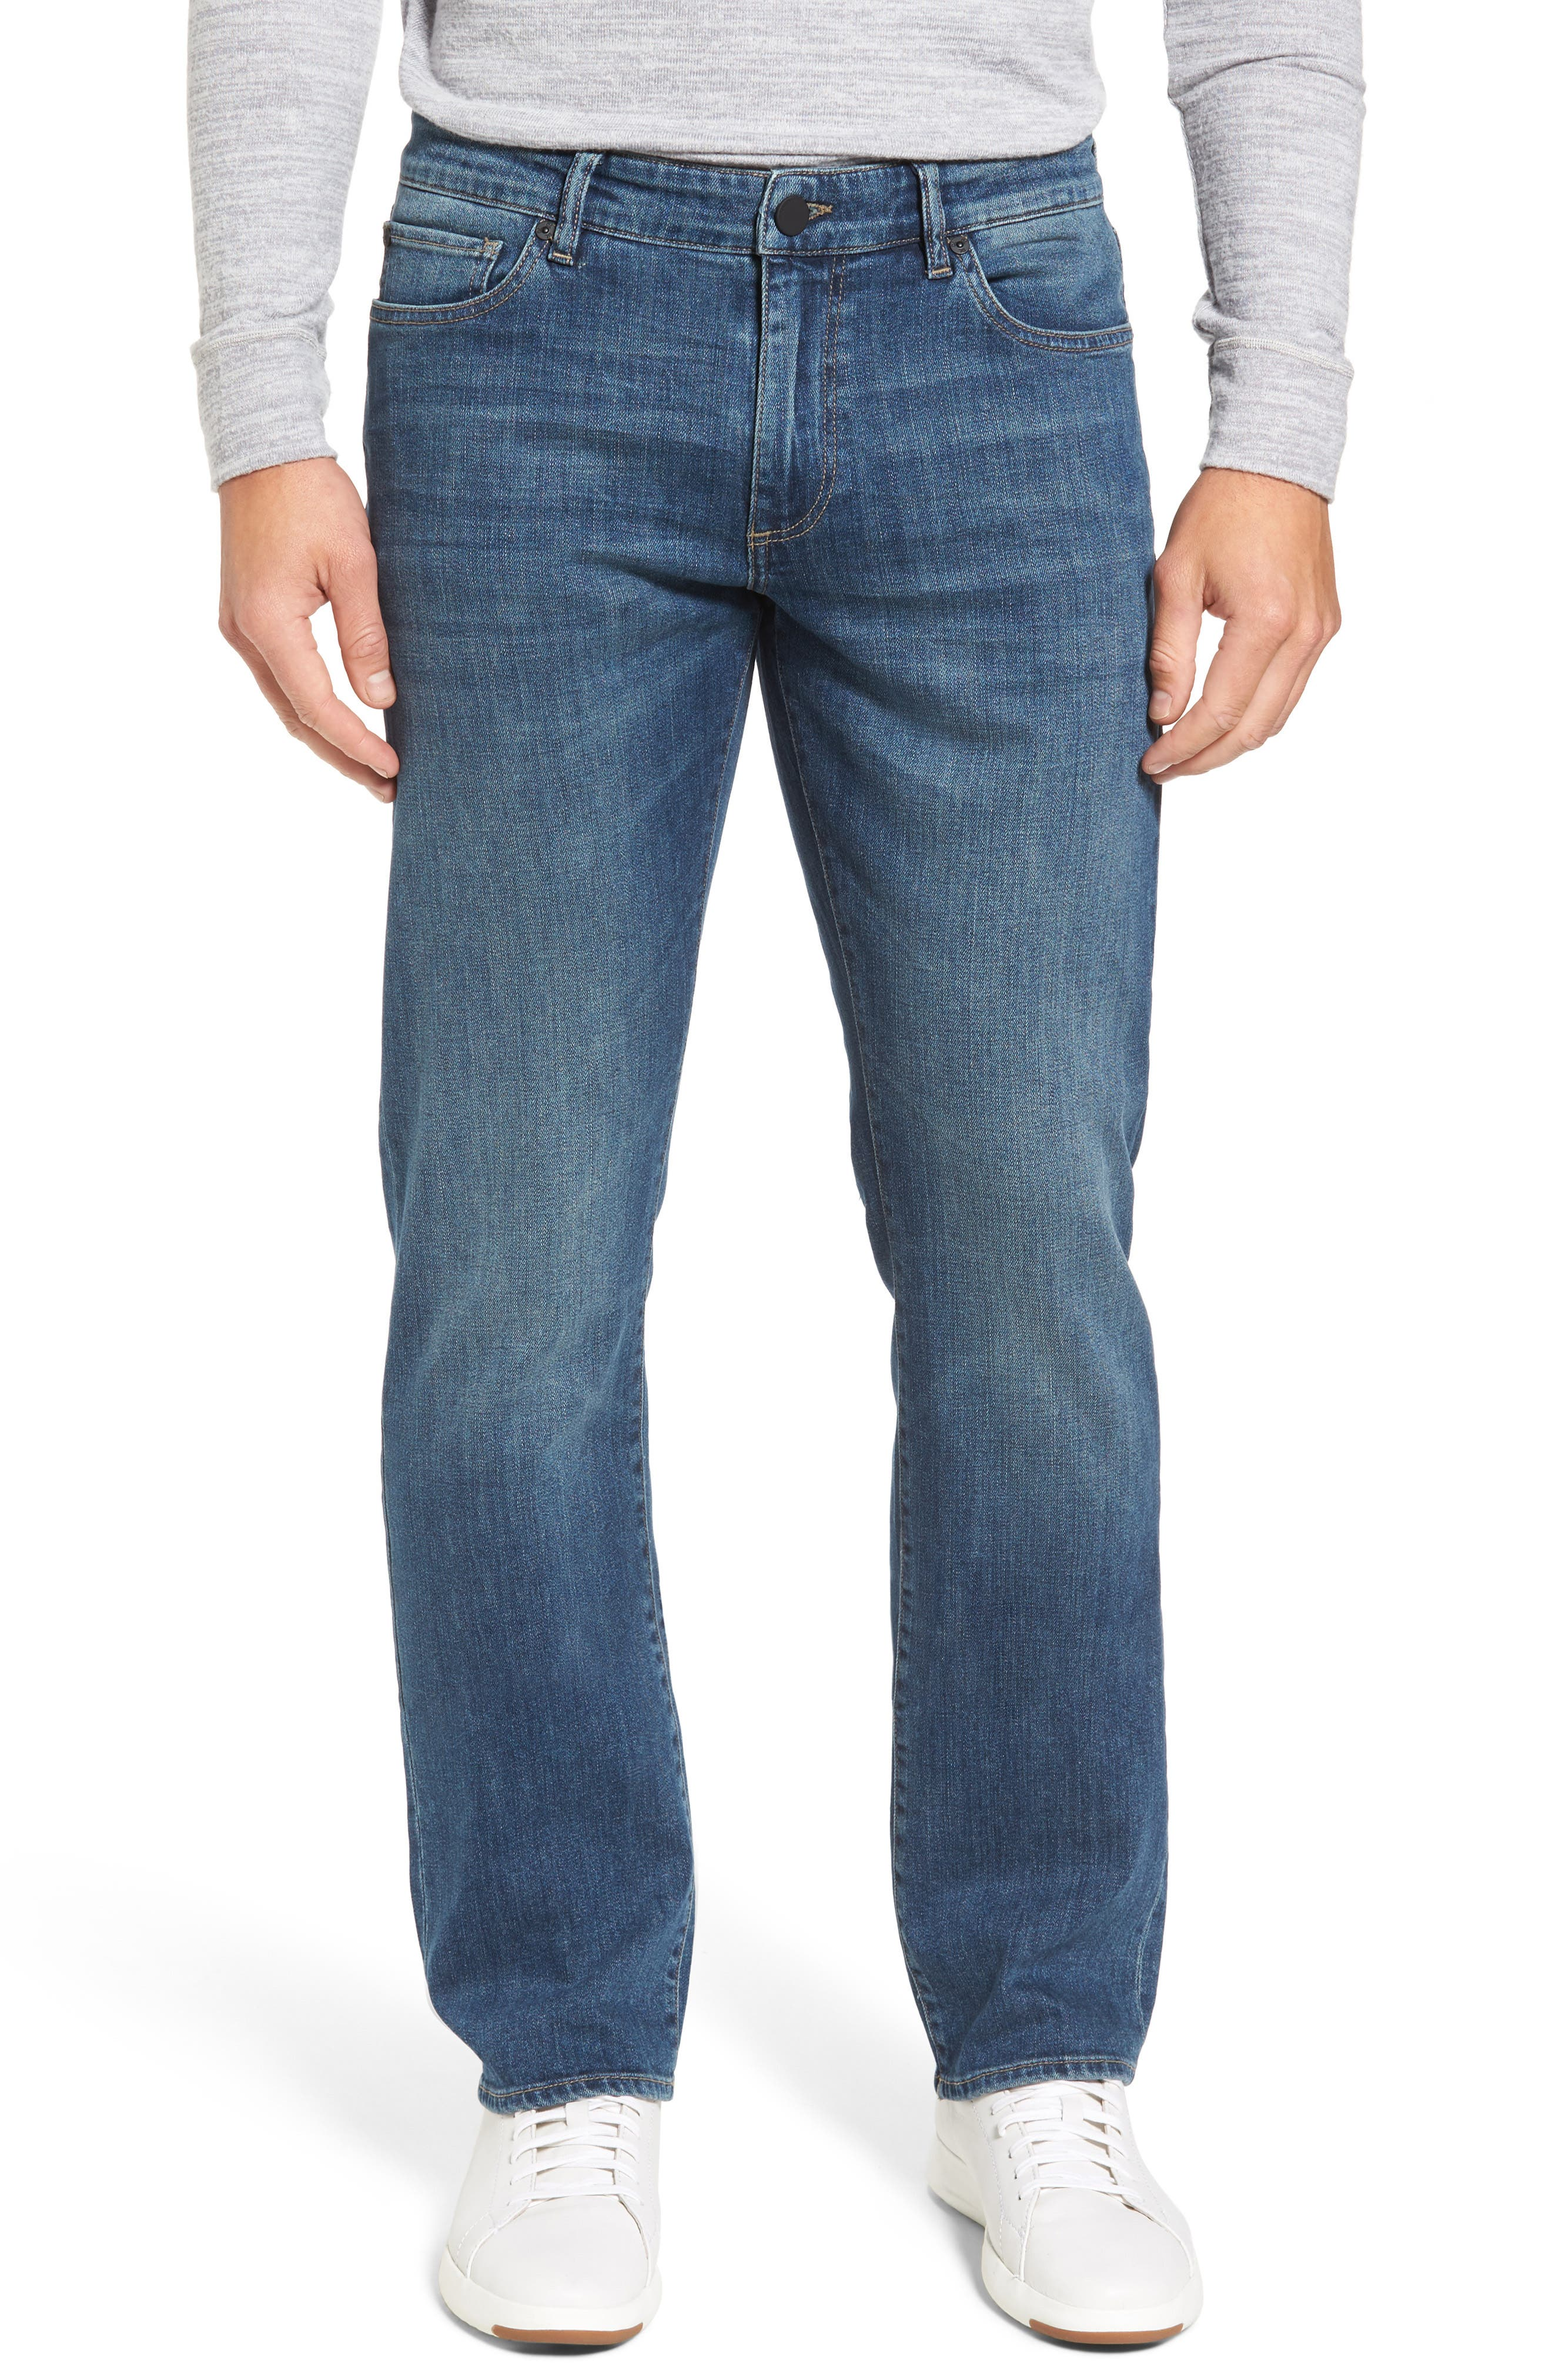 Alternate Image 1 Selected - DL1961 Avery Slim Straight Leg Jeans (Epoxy)